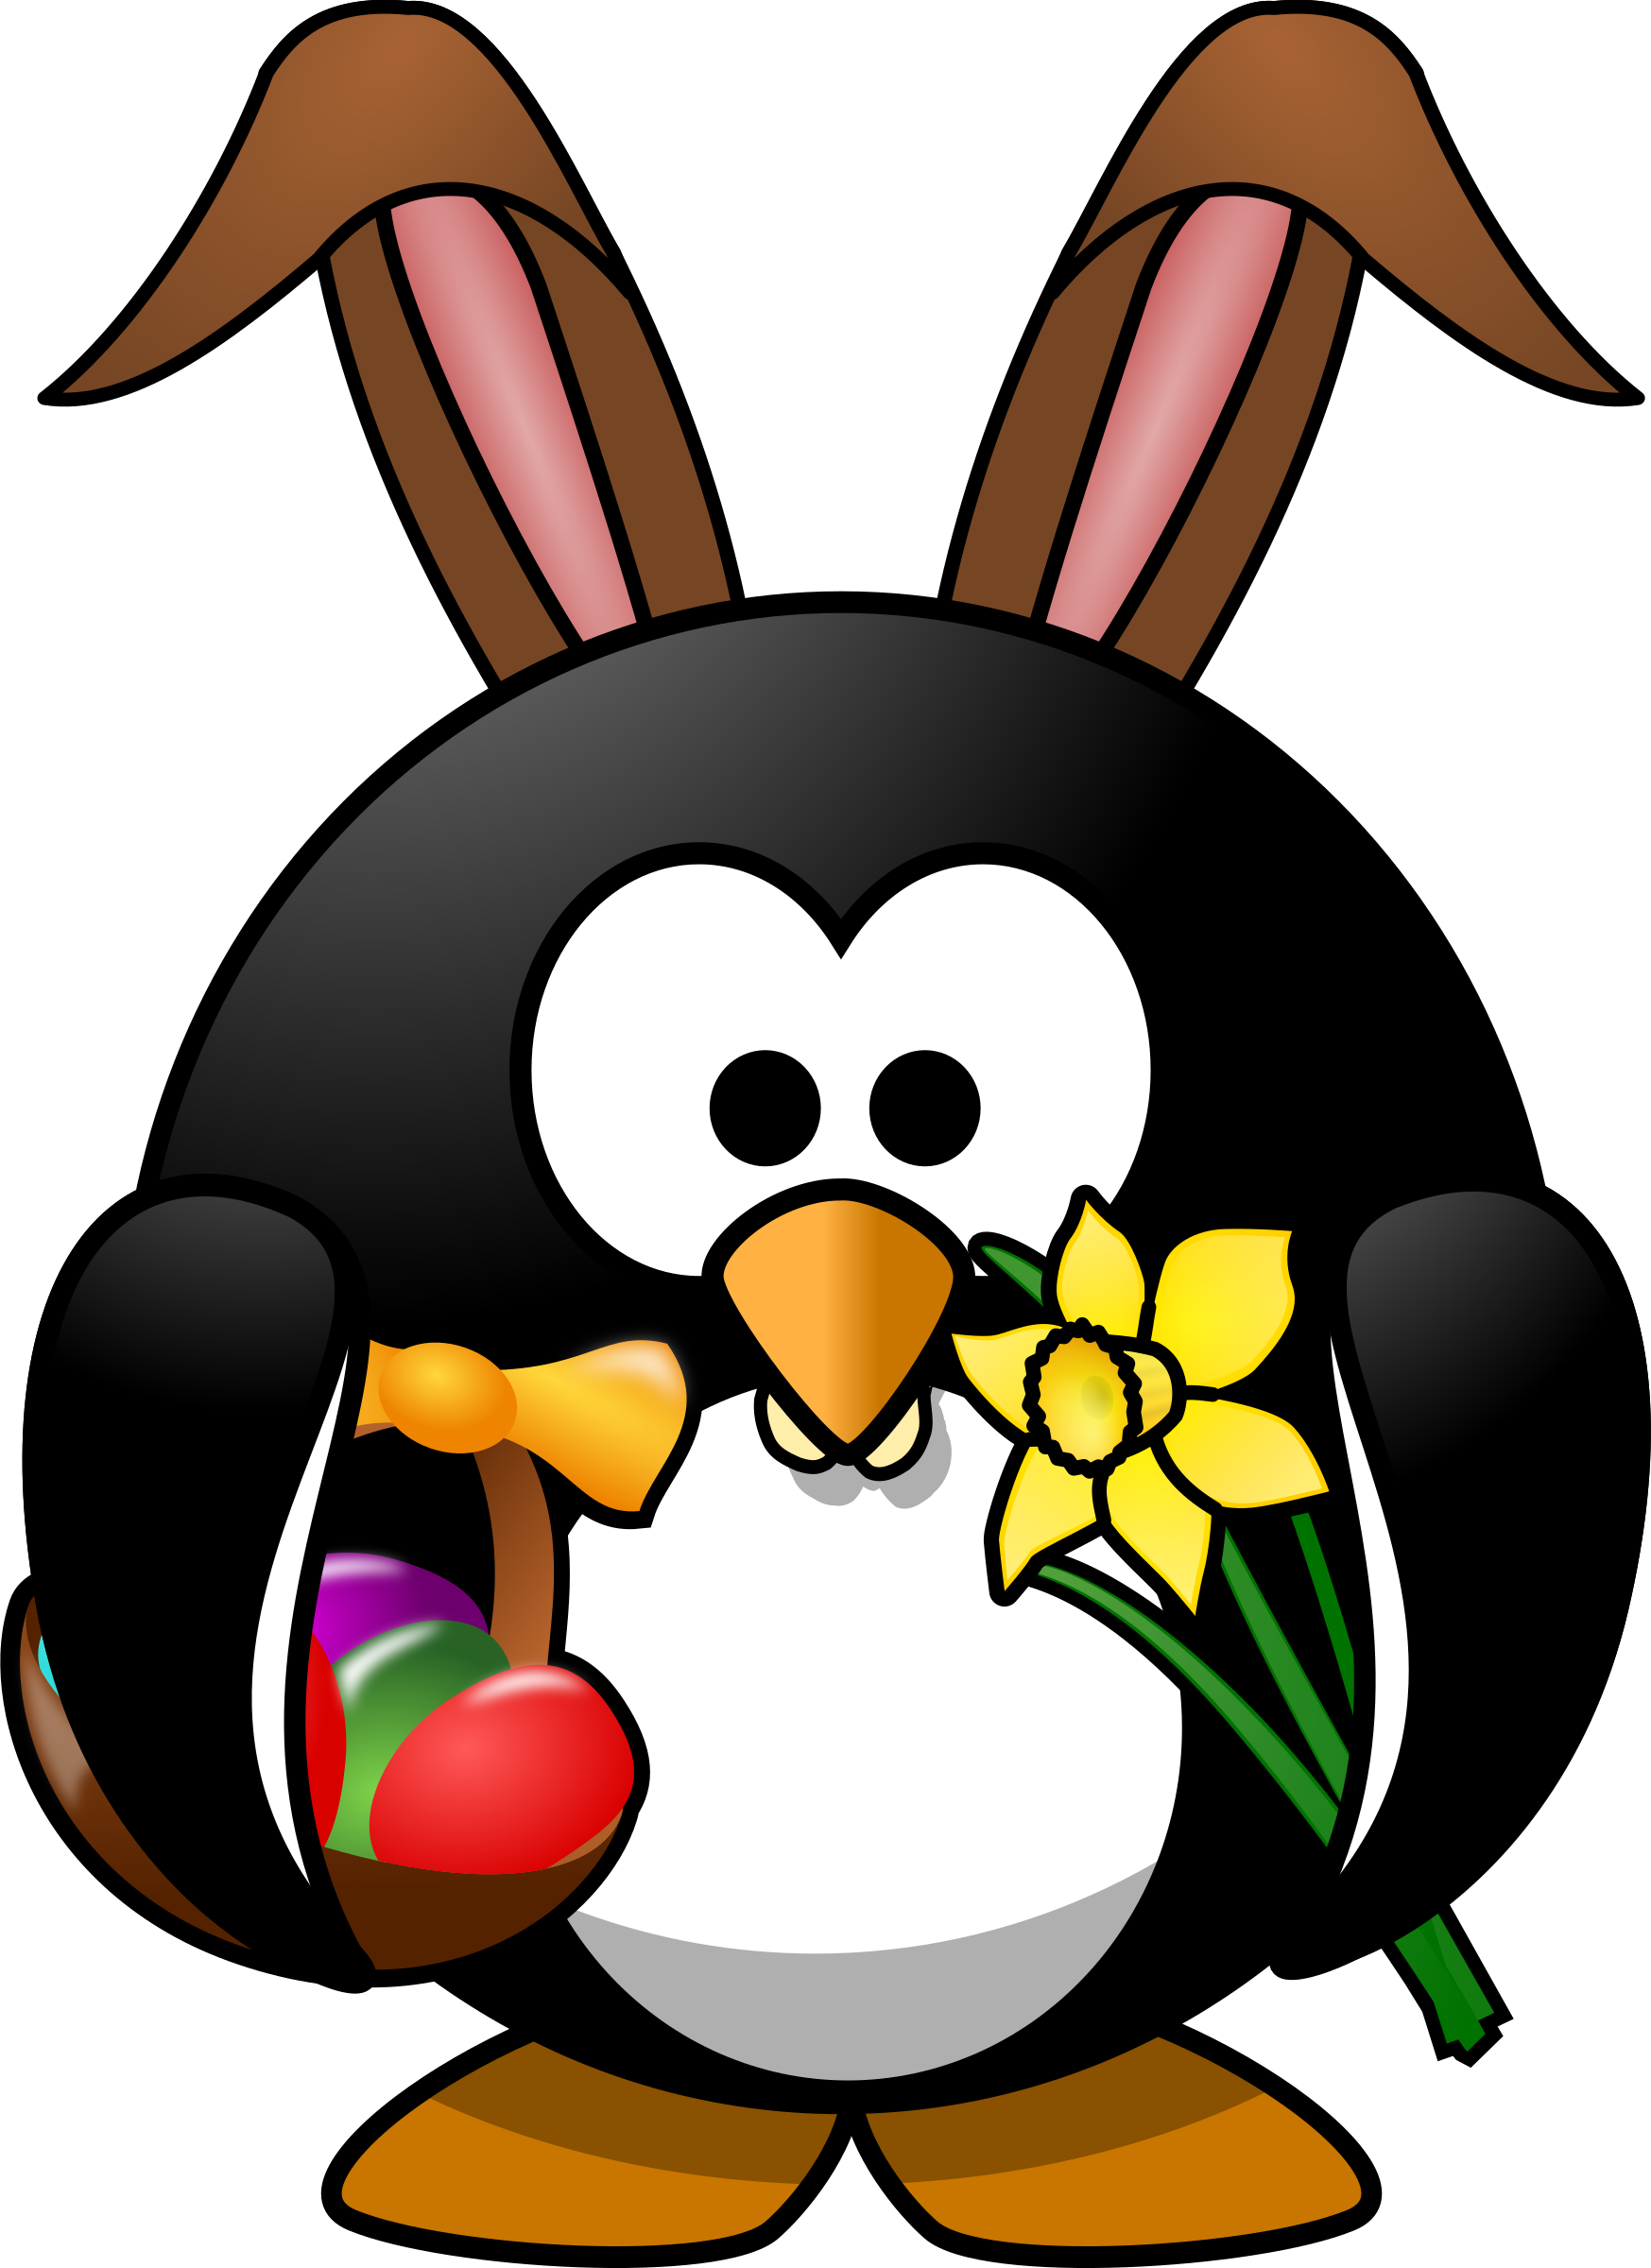 Bunny Penguin by Moini